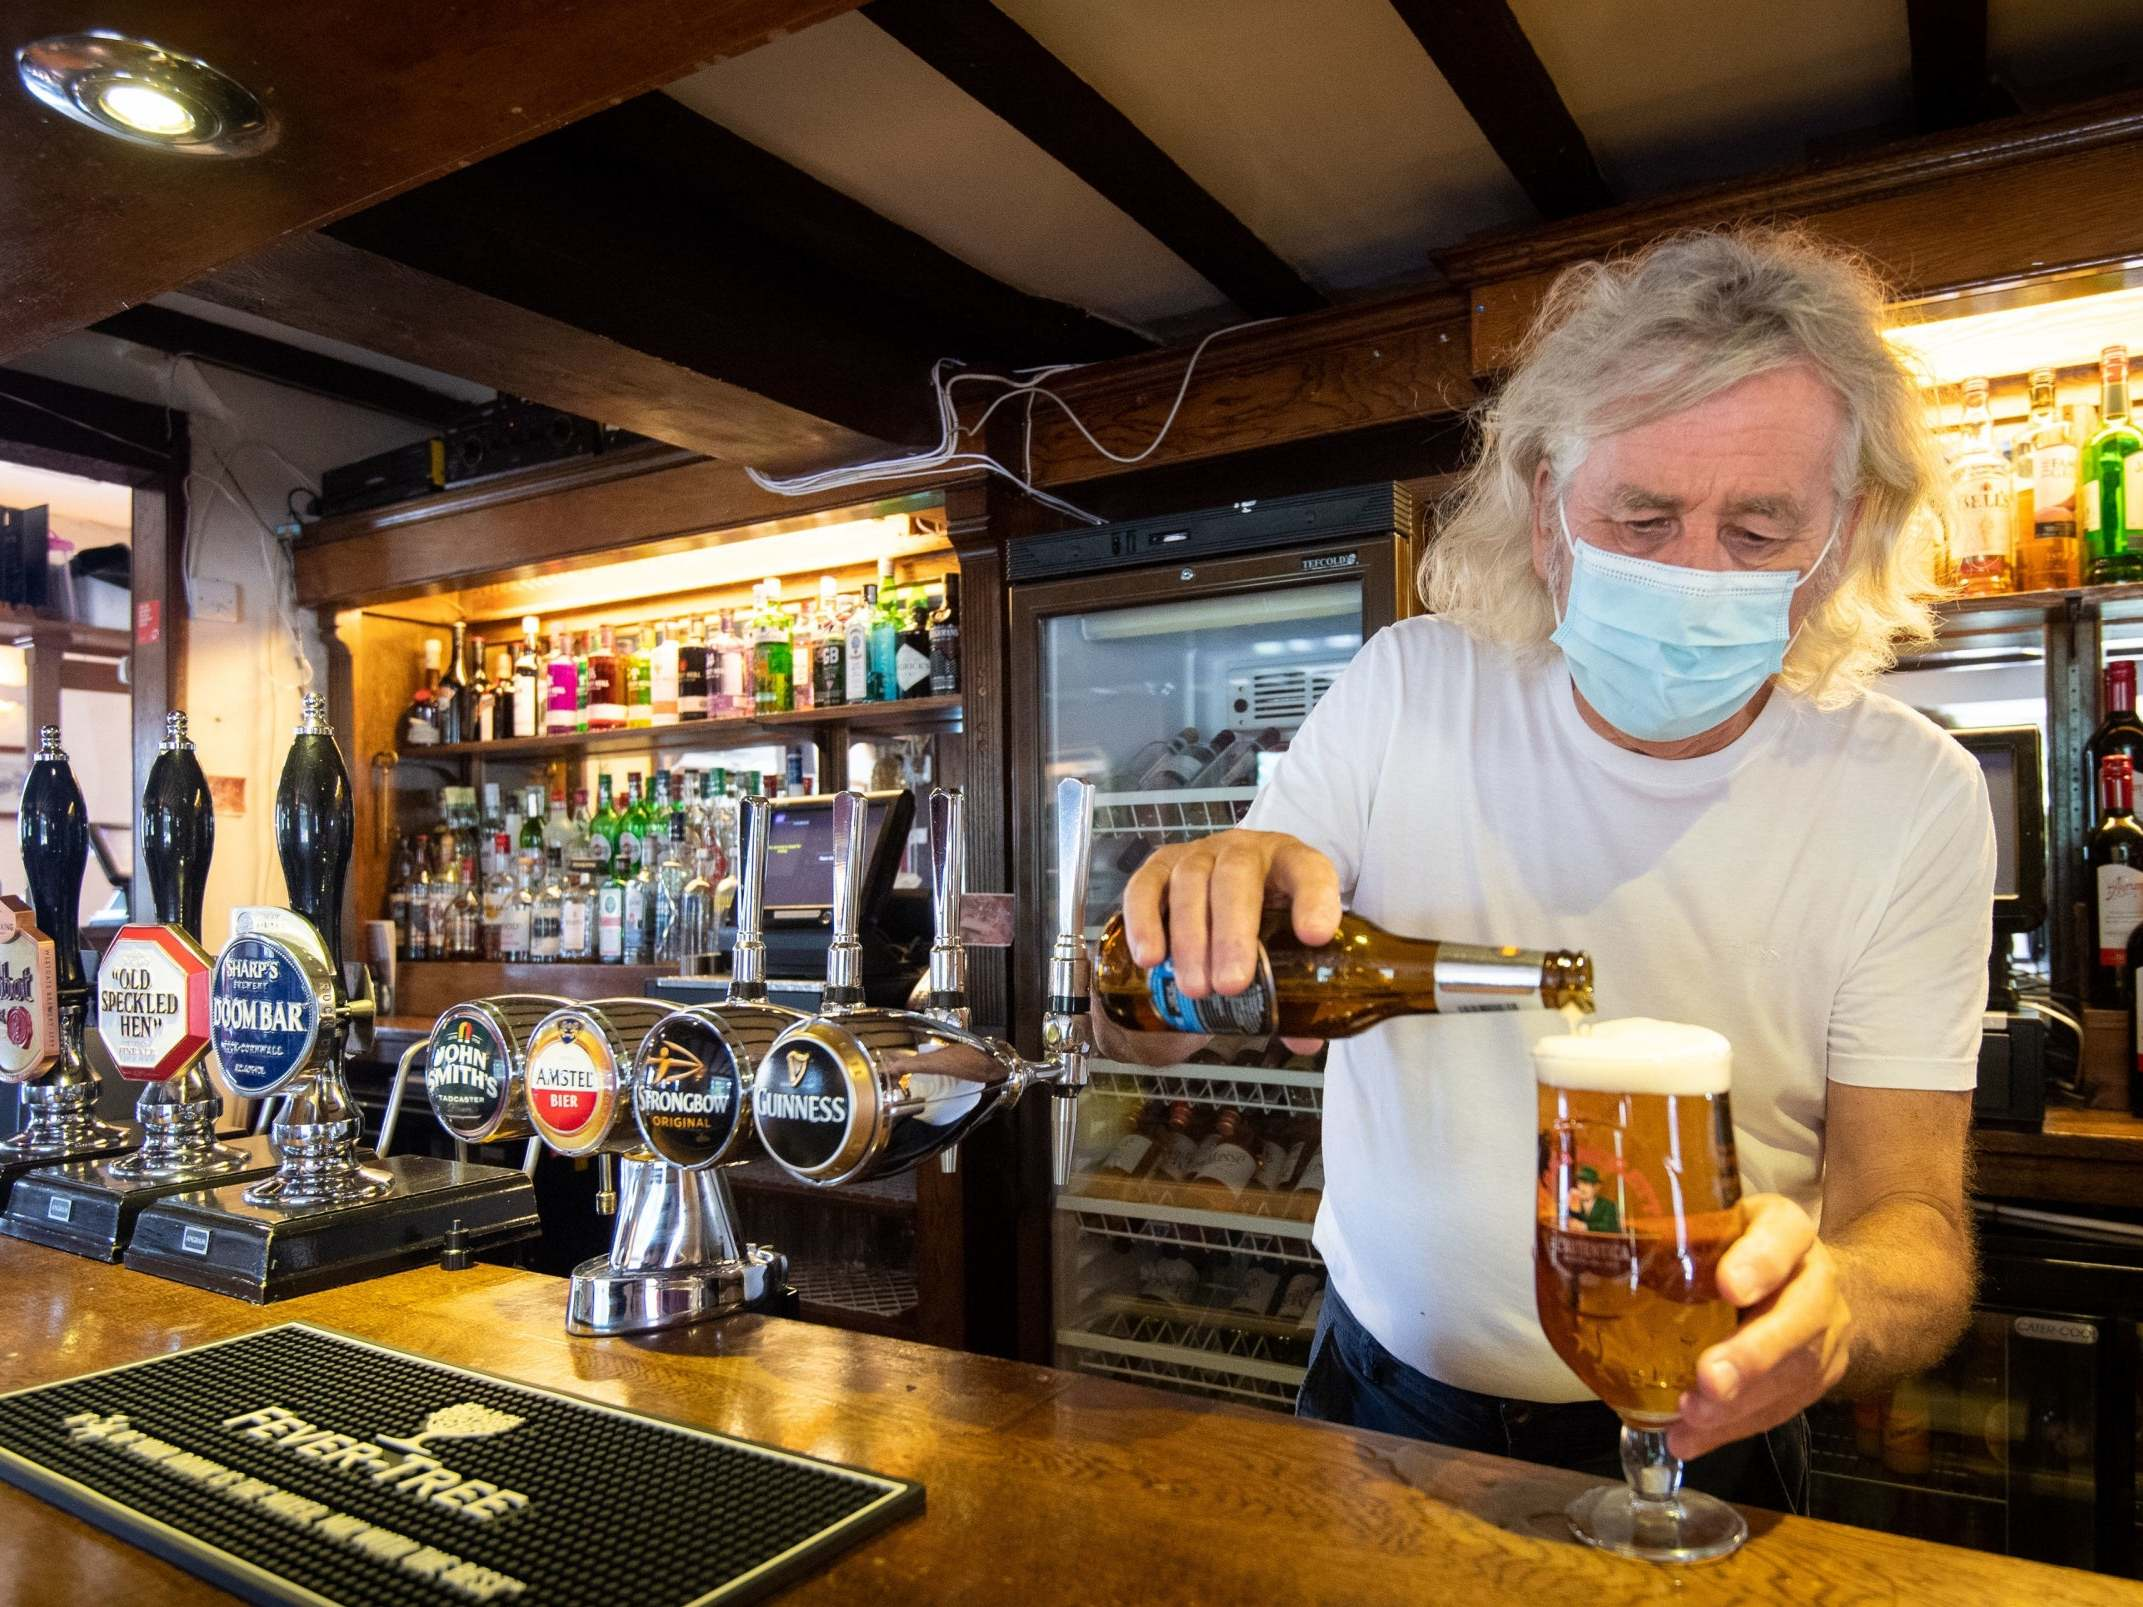 Coronavirus: Pubs to become quieter as government guidance urges drinkers to keep voices down